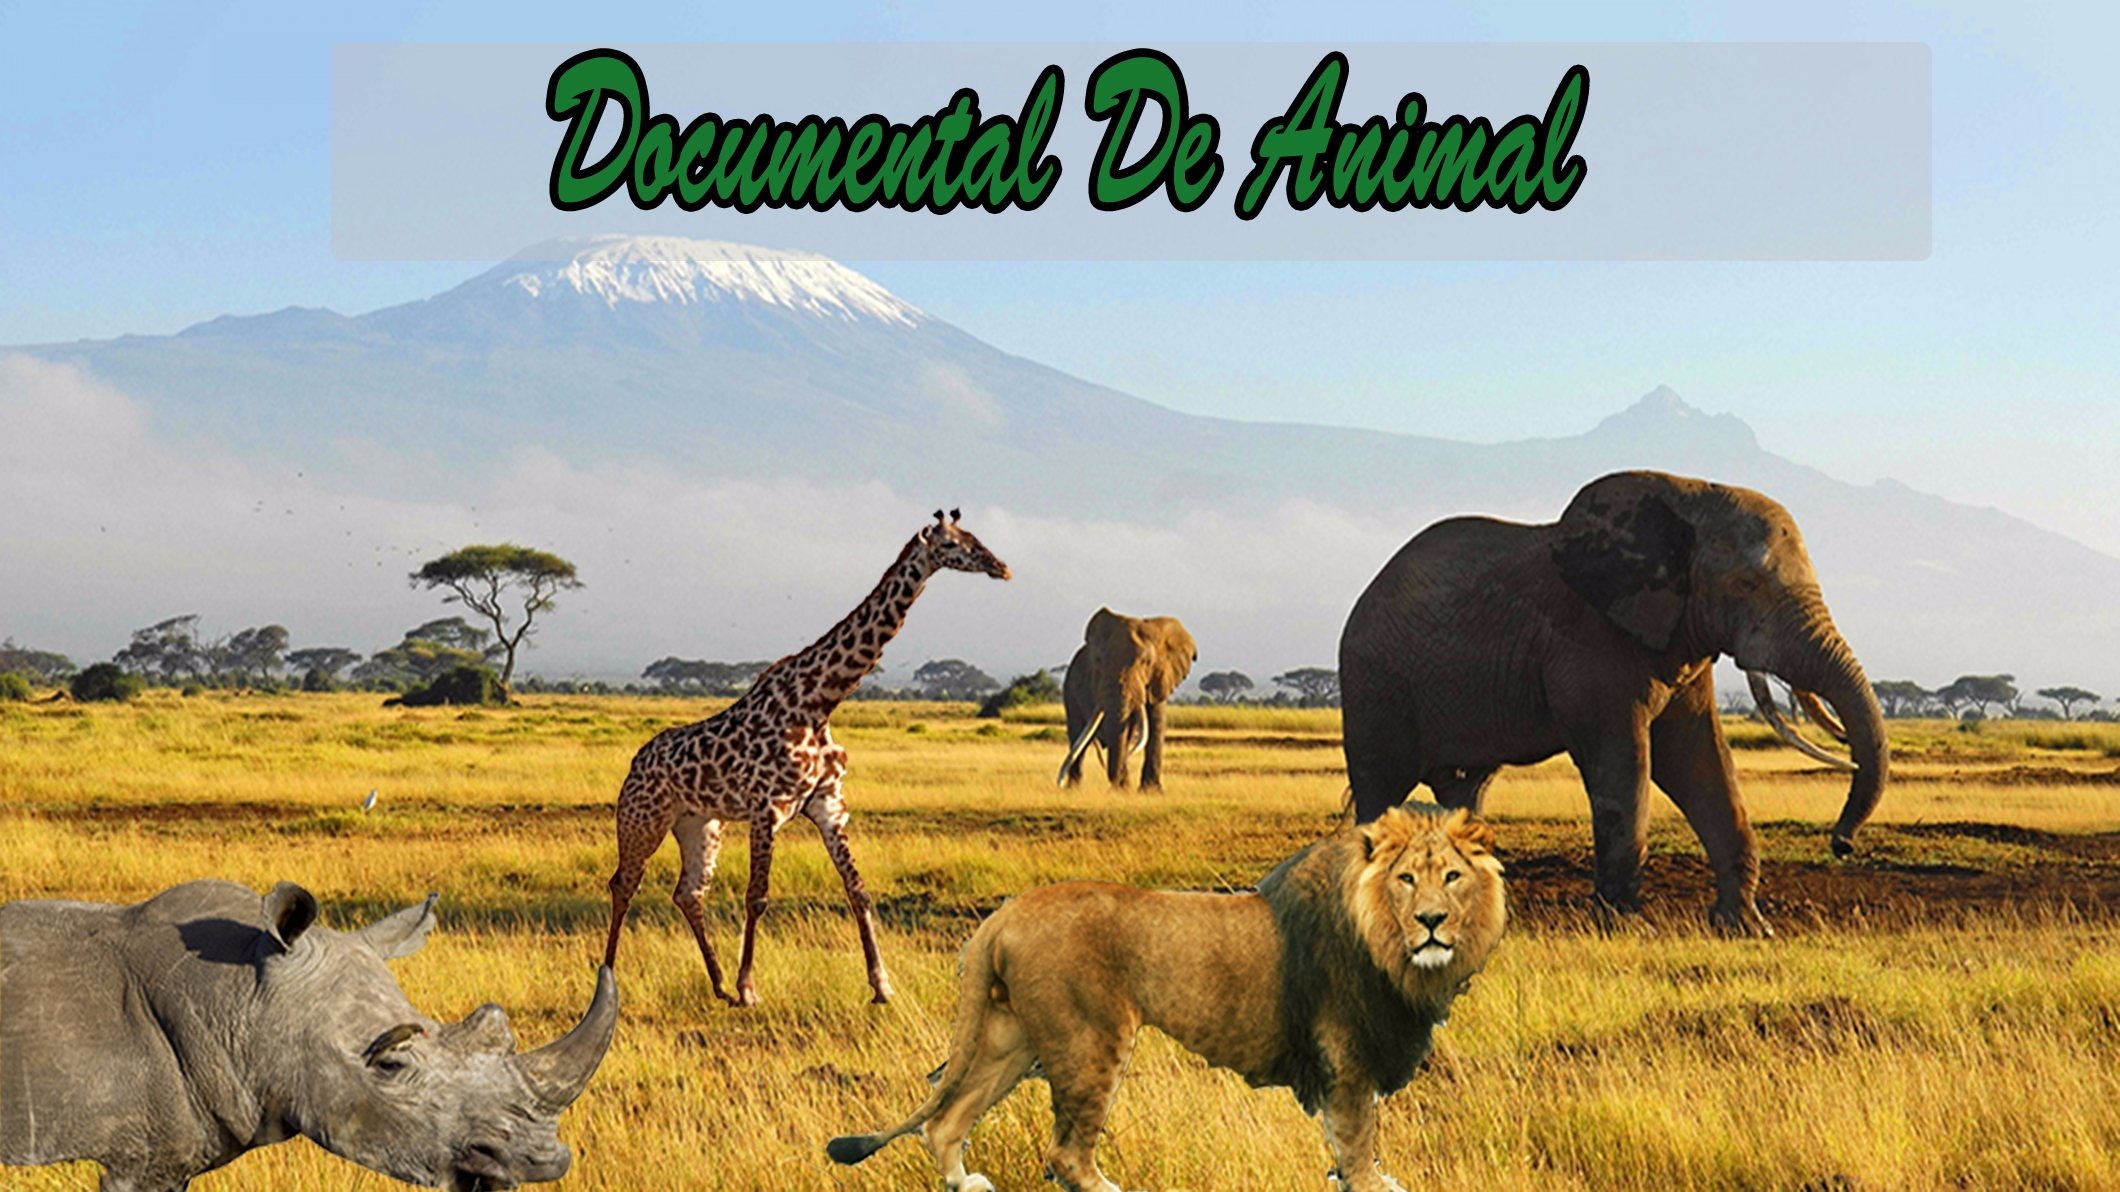 Documental De Animales (@documentaldeanimales) Cover Image